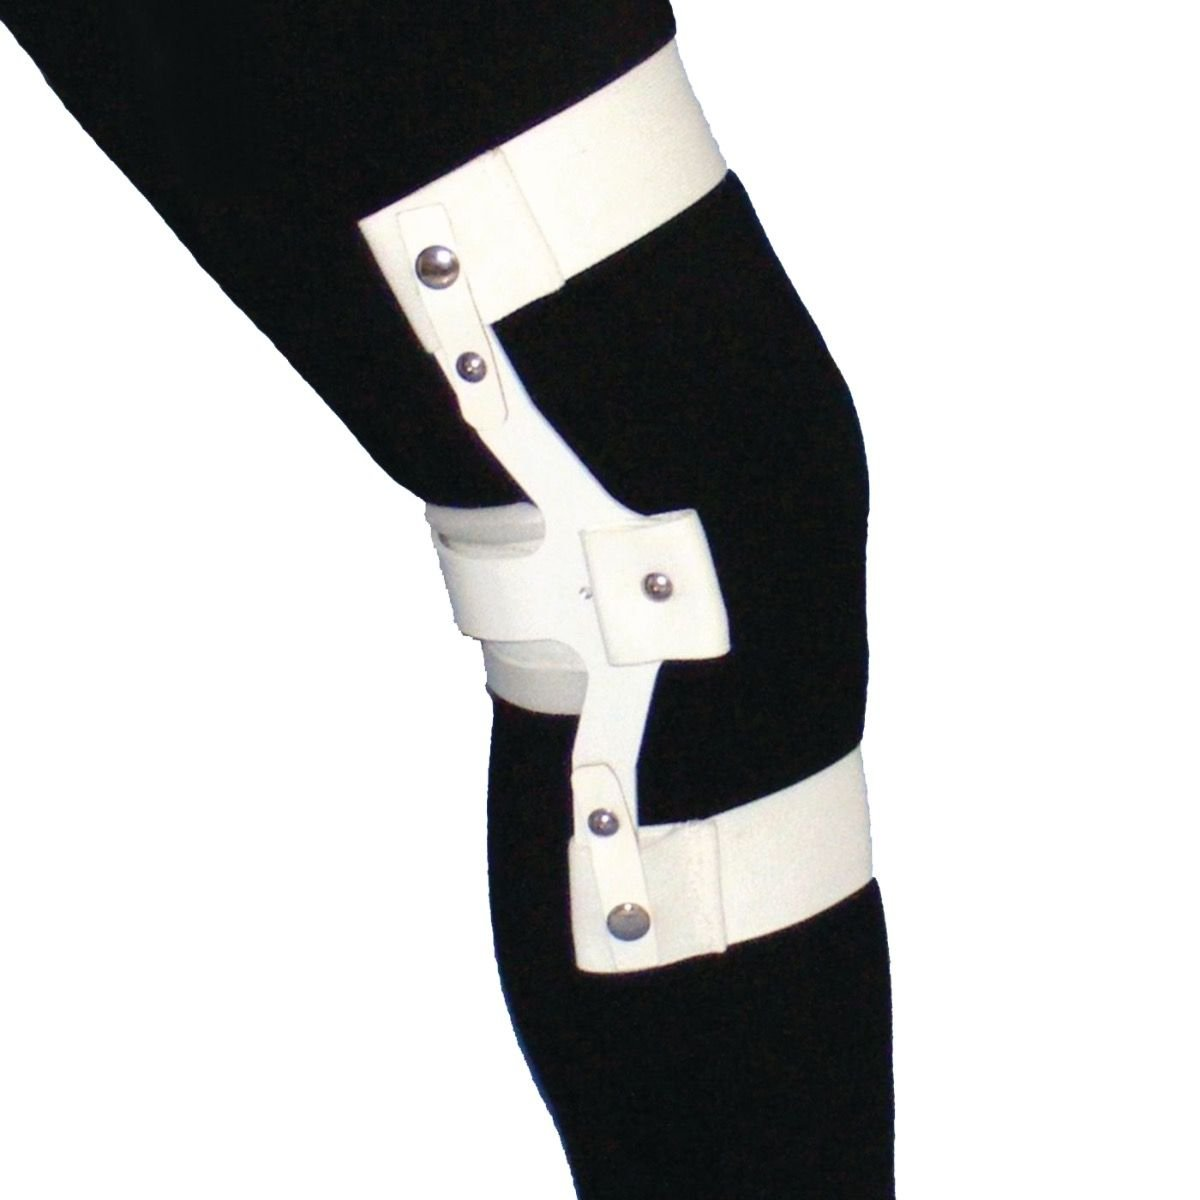 Physical Therapy Aids-41646 Swedish Style Knee Brace, Medium